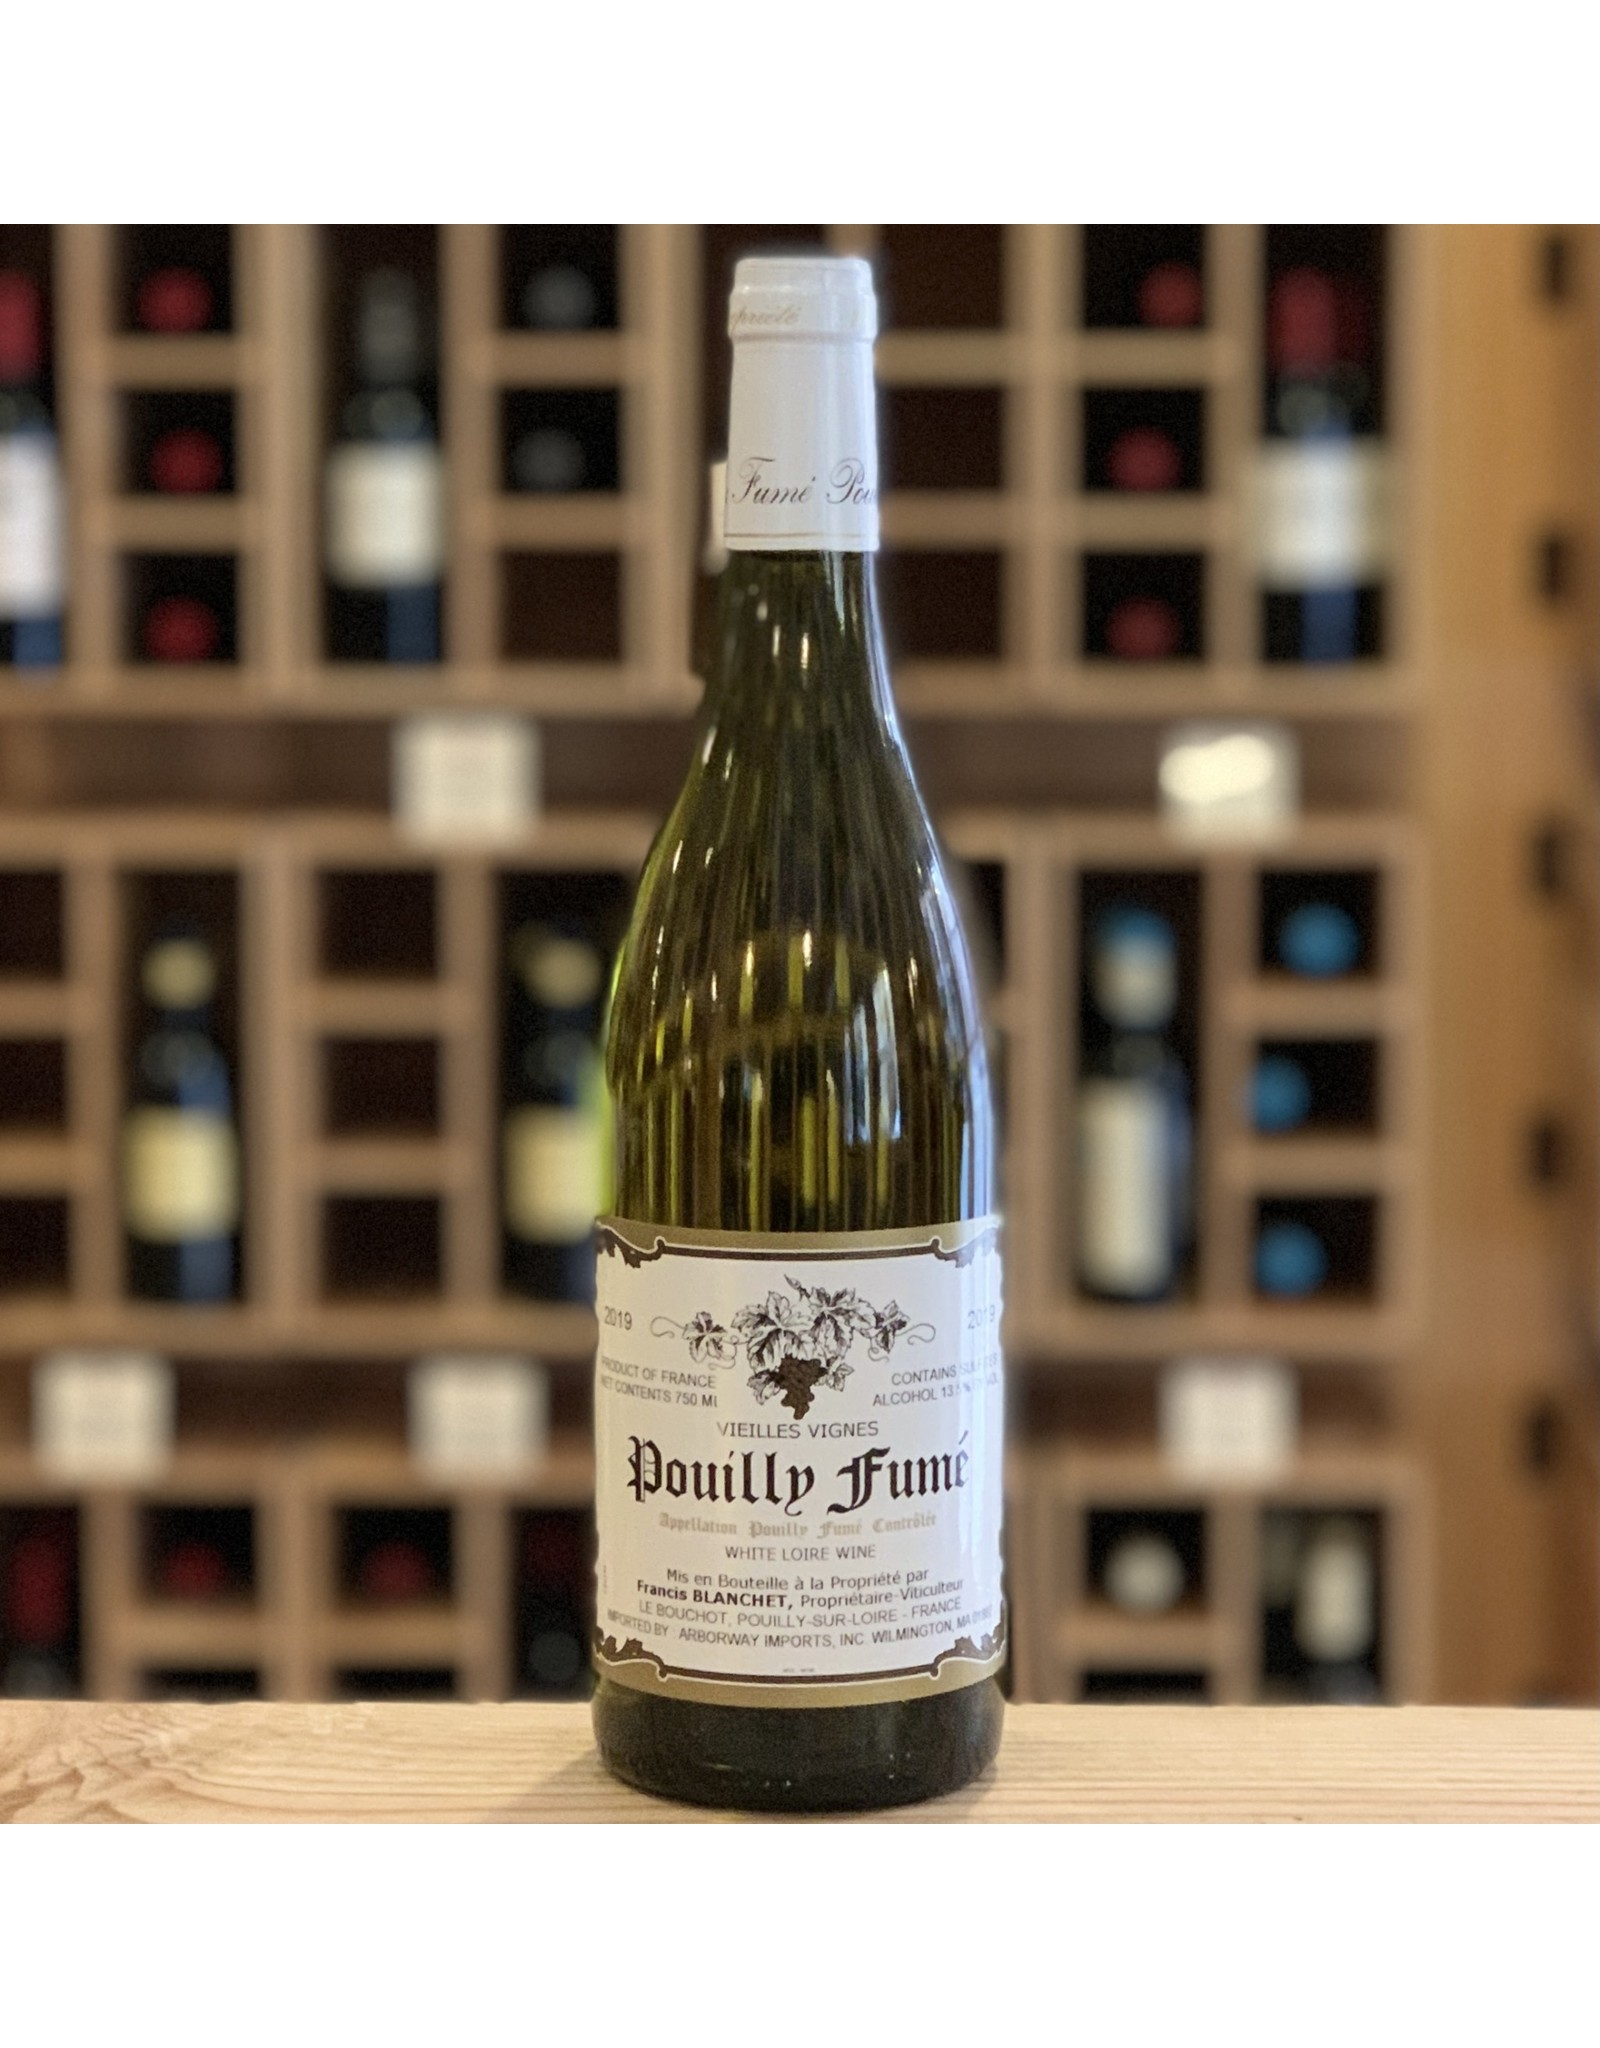 "Loire Valley Earl Francis Blanchet ""Vieilles Vignes"" Pouilly Fume 2019 - Loire Valley, France"